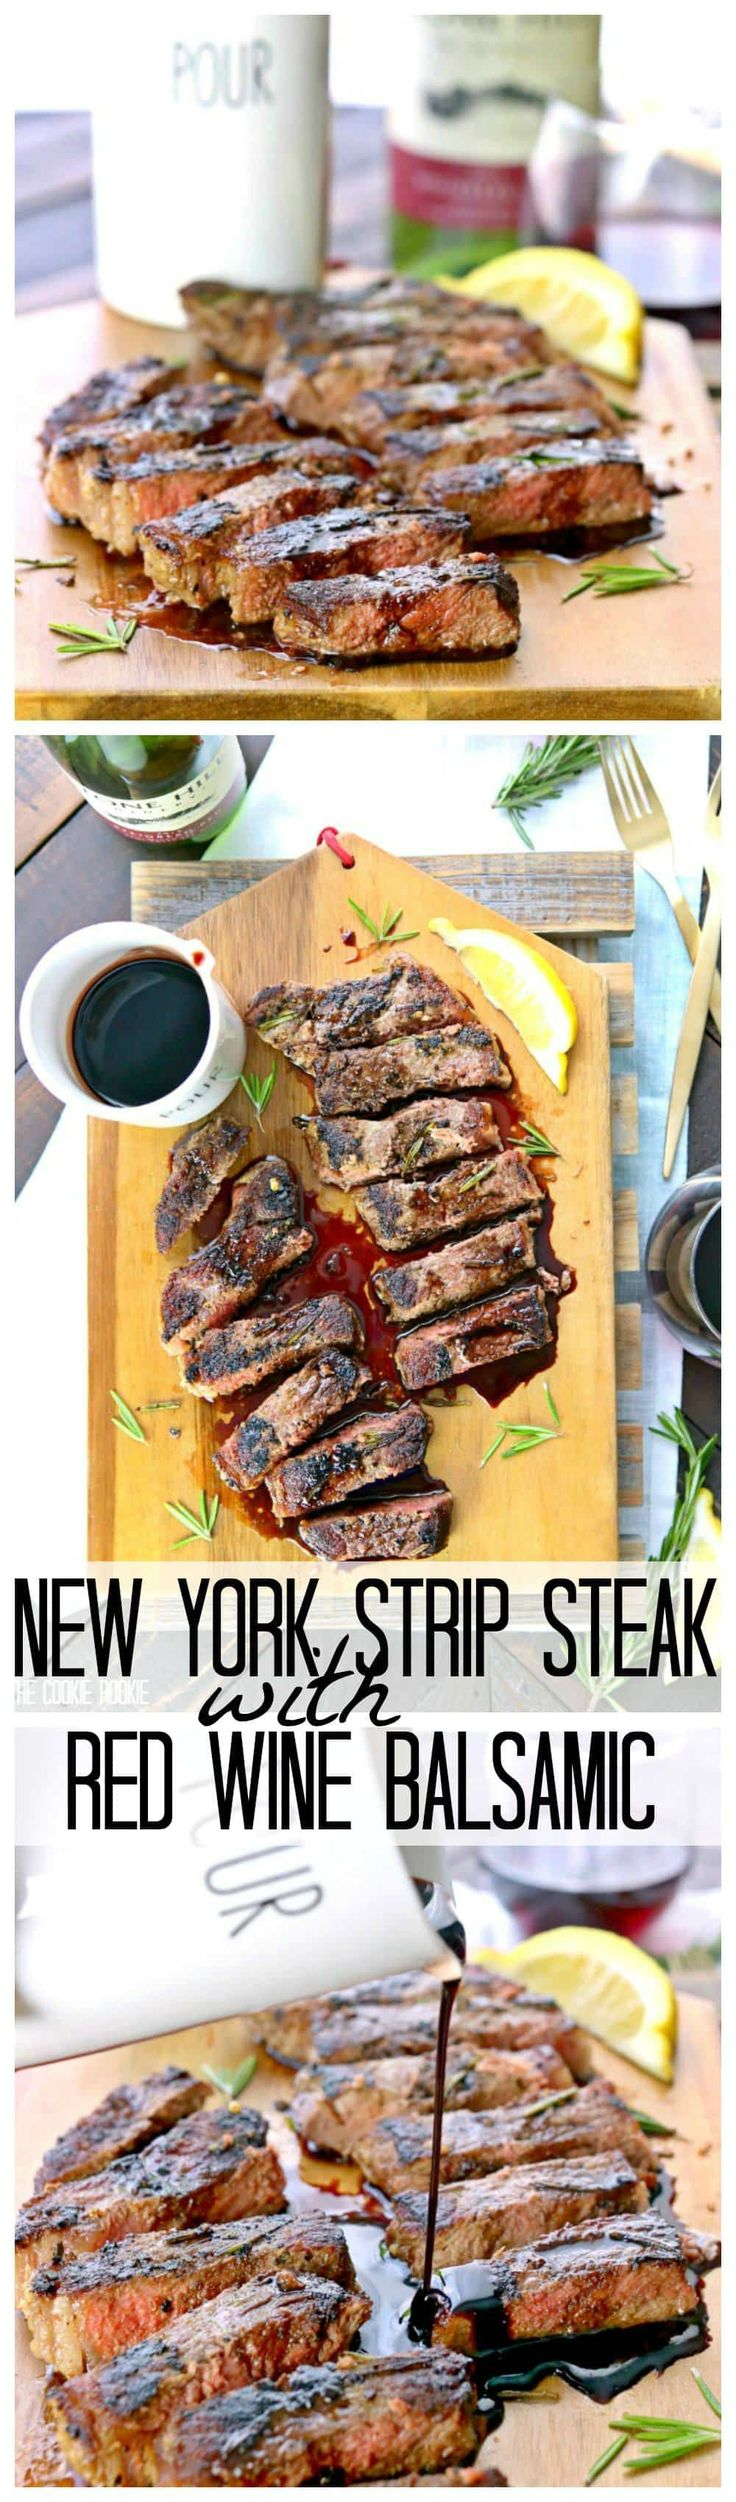 Seared New York Strip Steak with Red Wine Balsamic Reduction! Eat like a King or Queen at home with this easy and quick DELICIOUS dinner. THE BEST STEAK EVER.